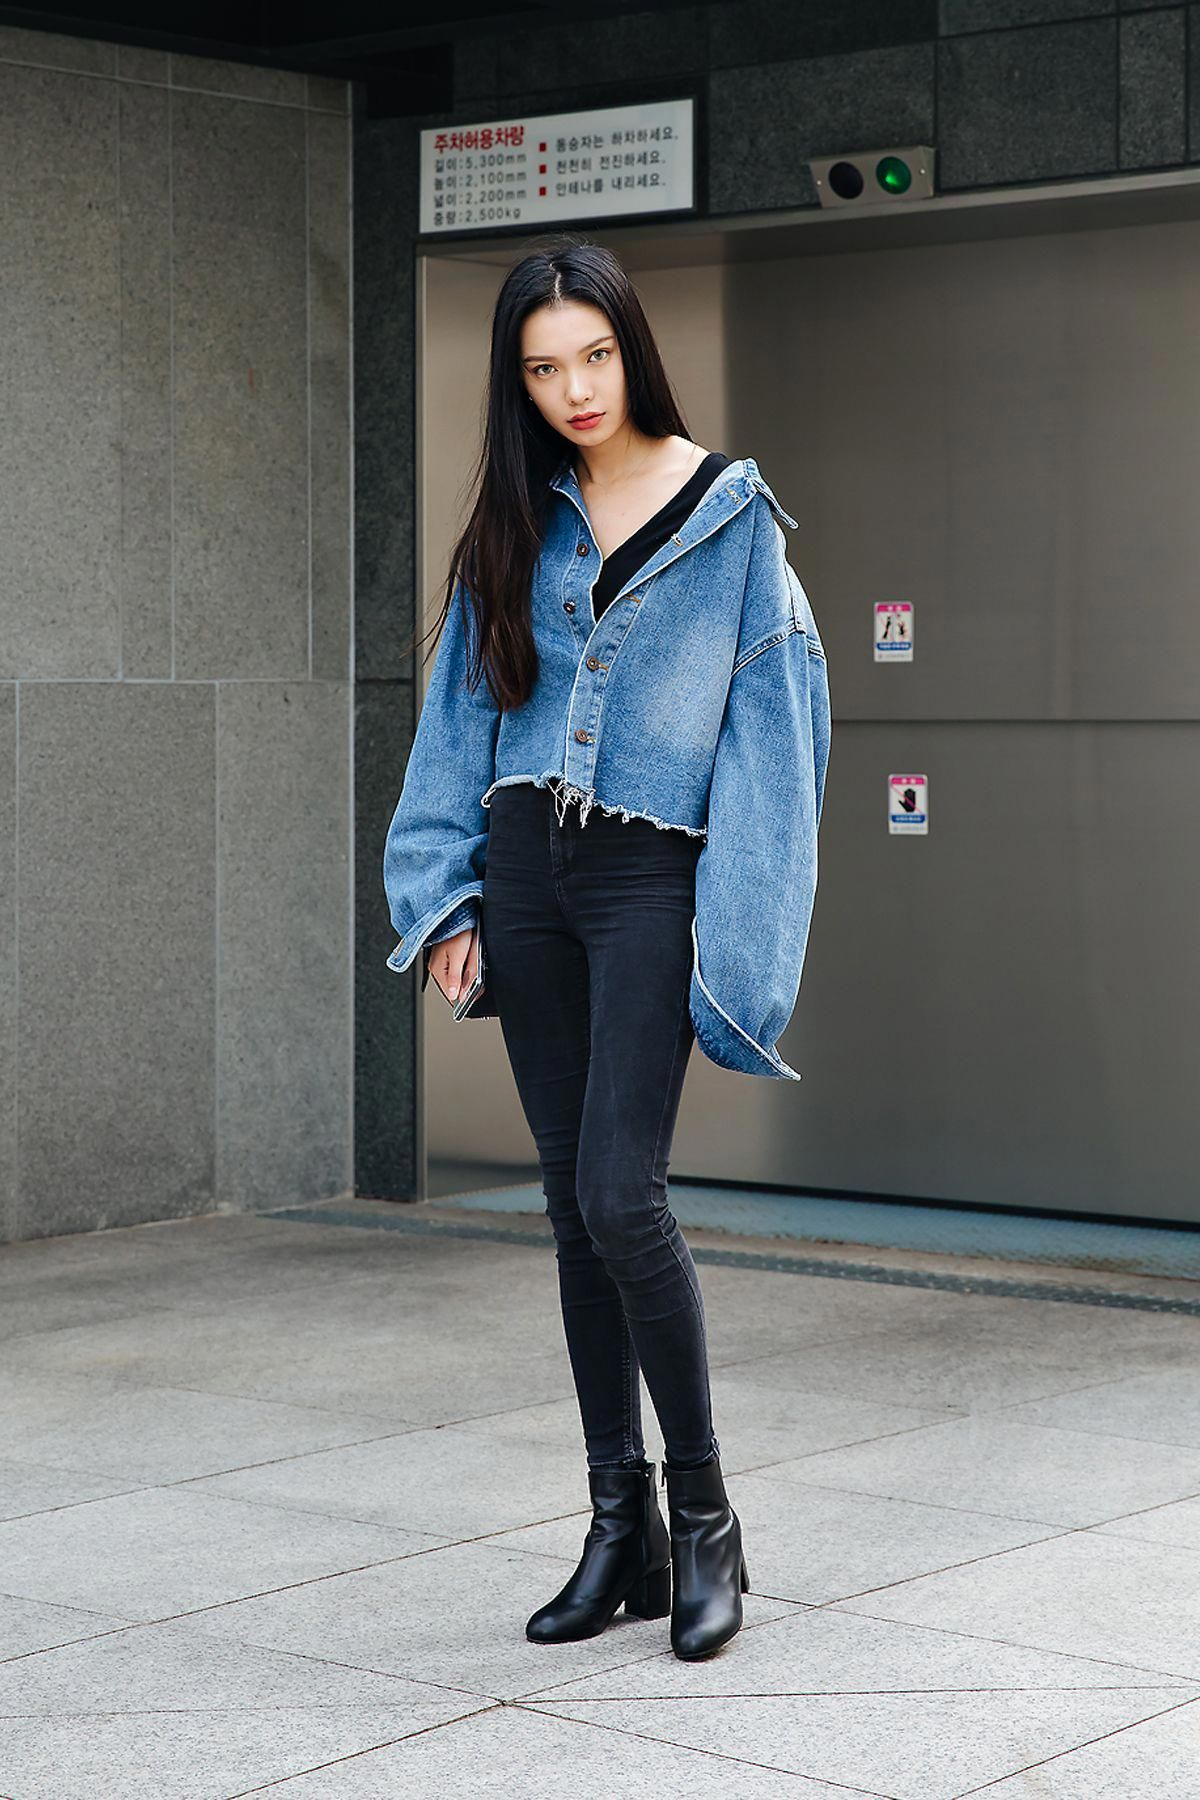 Blue Chic outfits 2015 street style inspiration